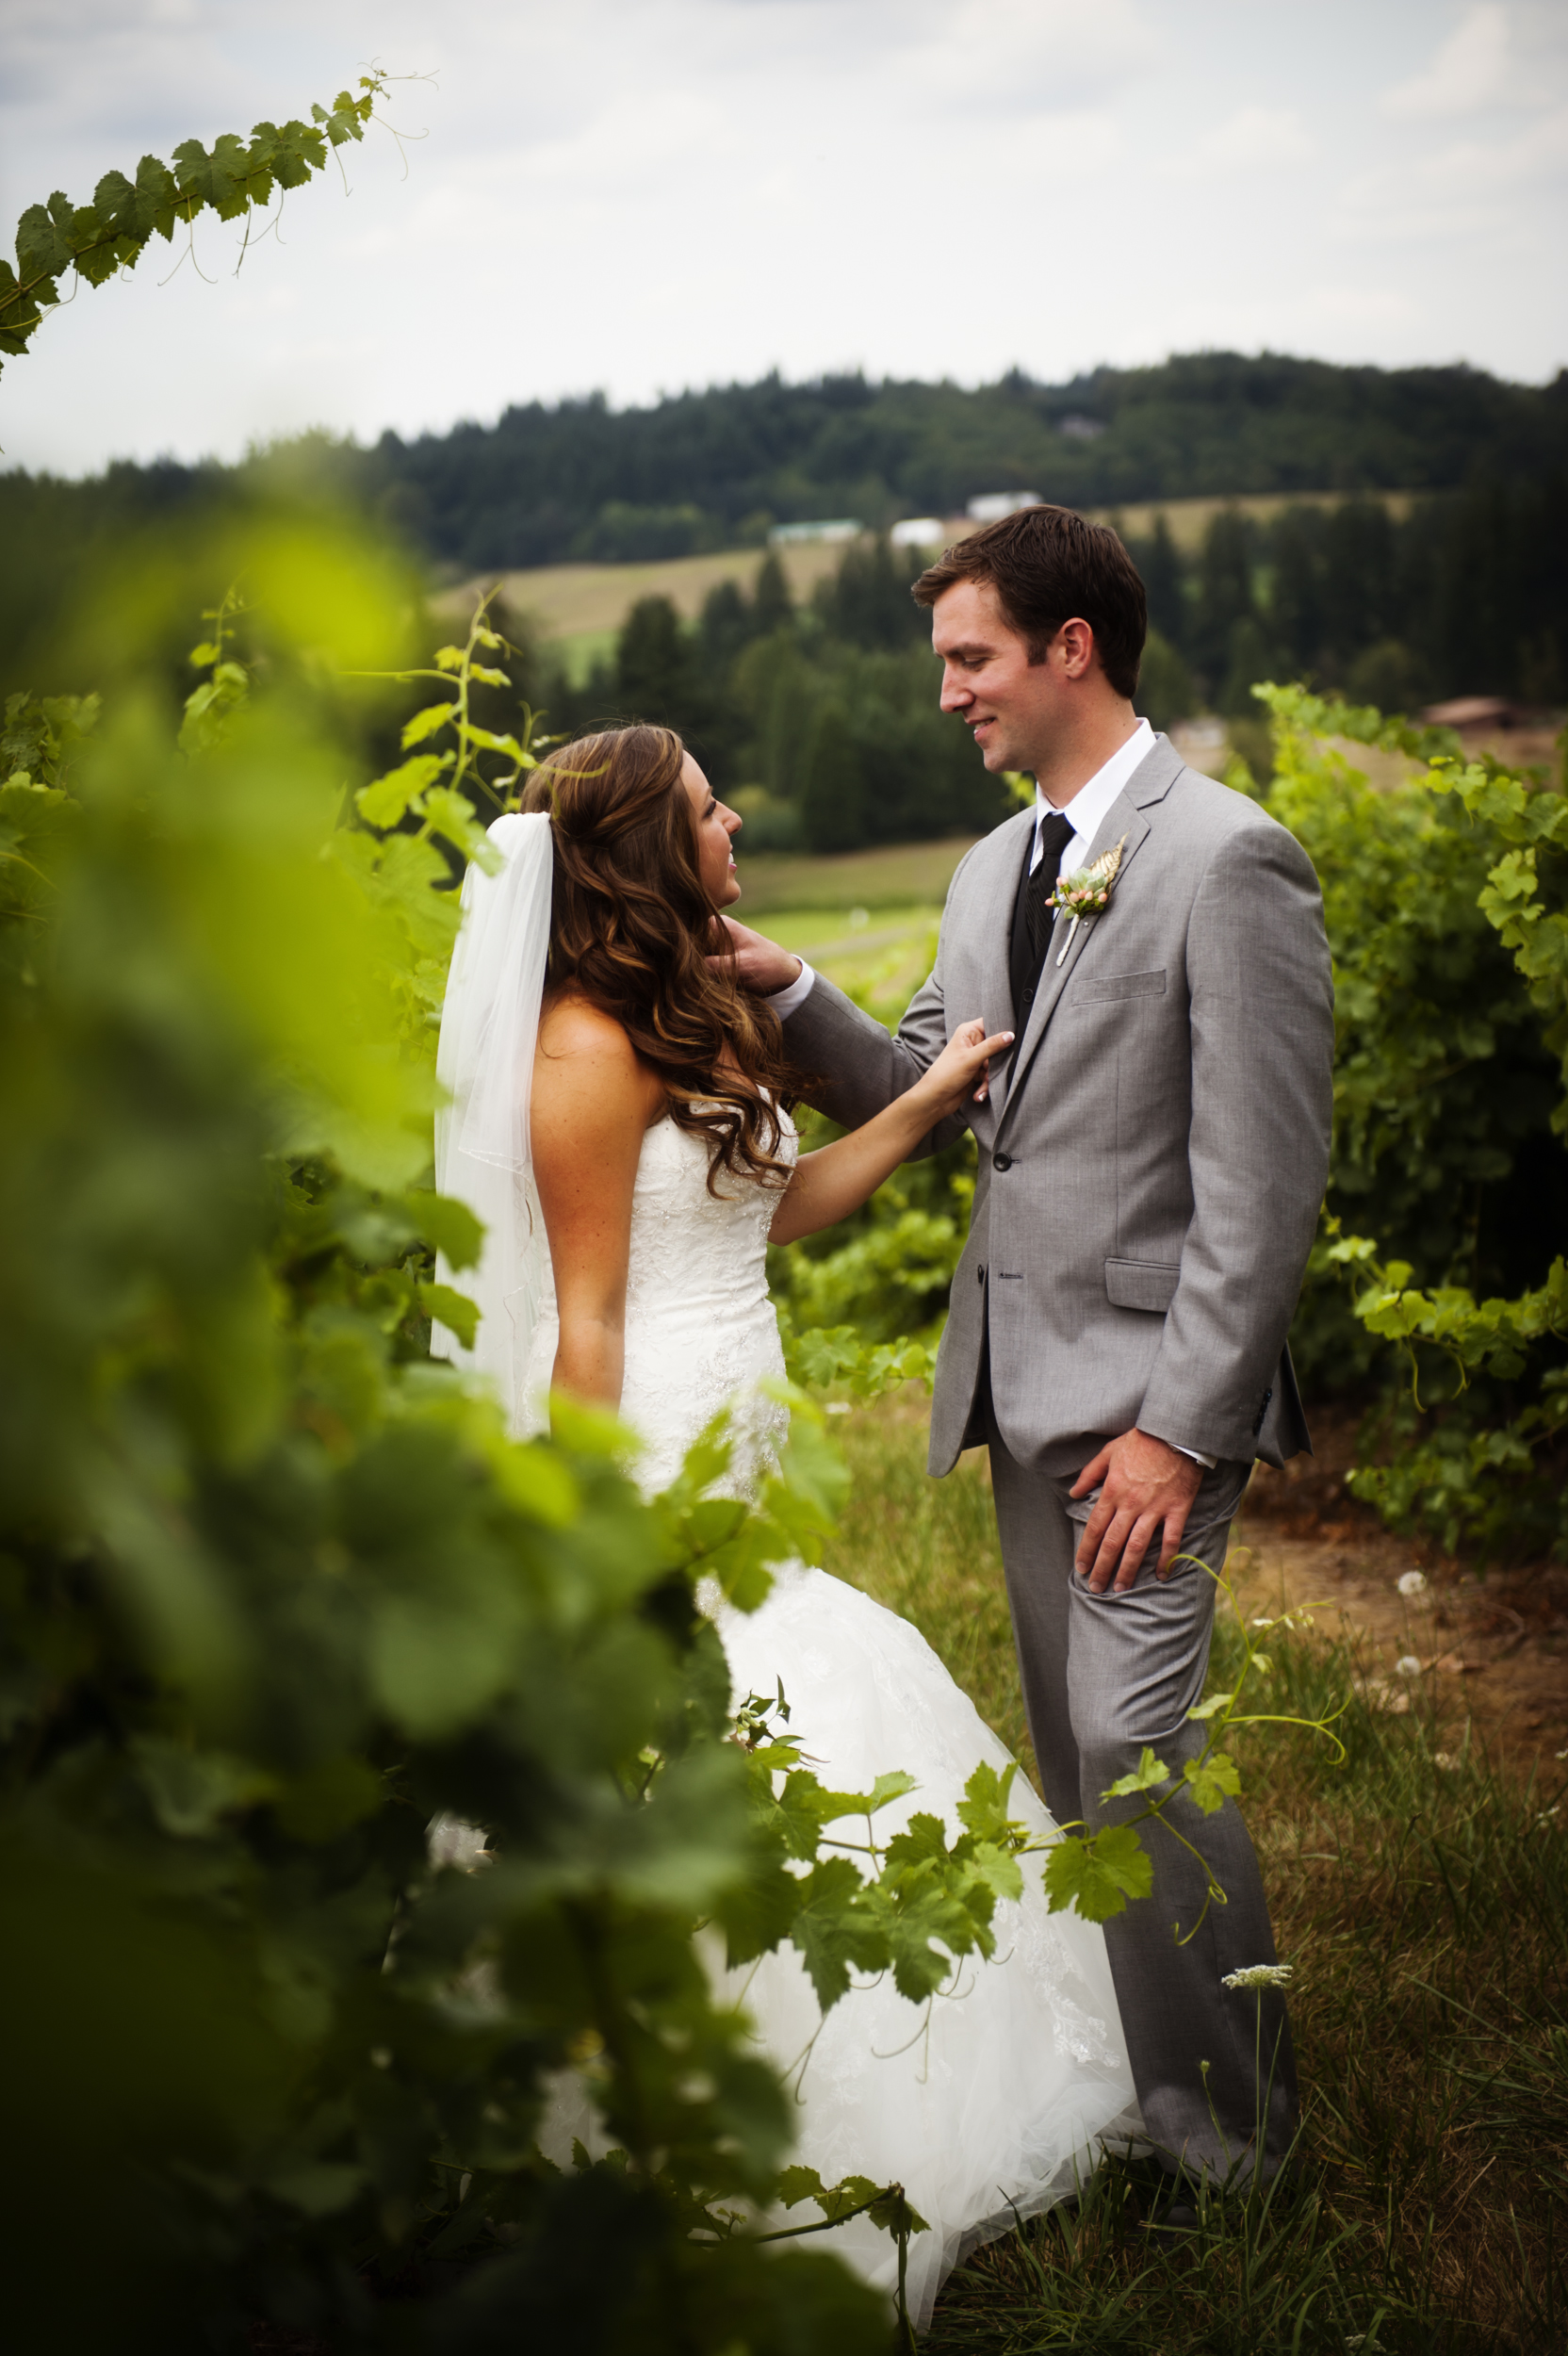 Portrait of couple on wedding day in vines at Kings Raven Vineyard in Oregon City, Oregon by Ripe Photography.